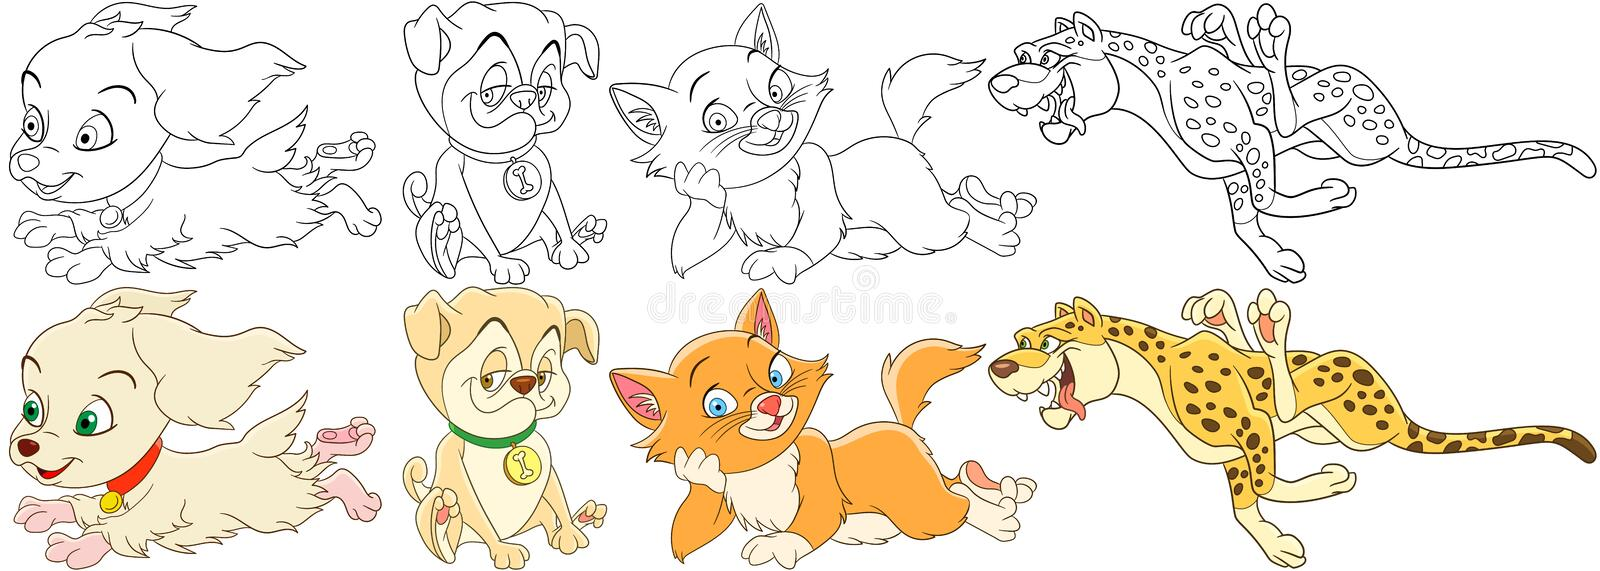 Cartoon cat dog set stock images